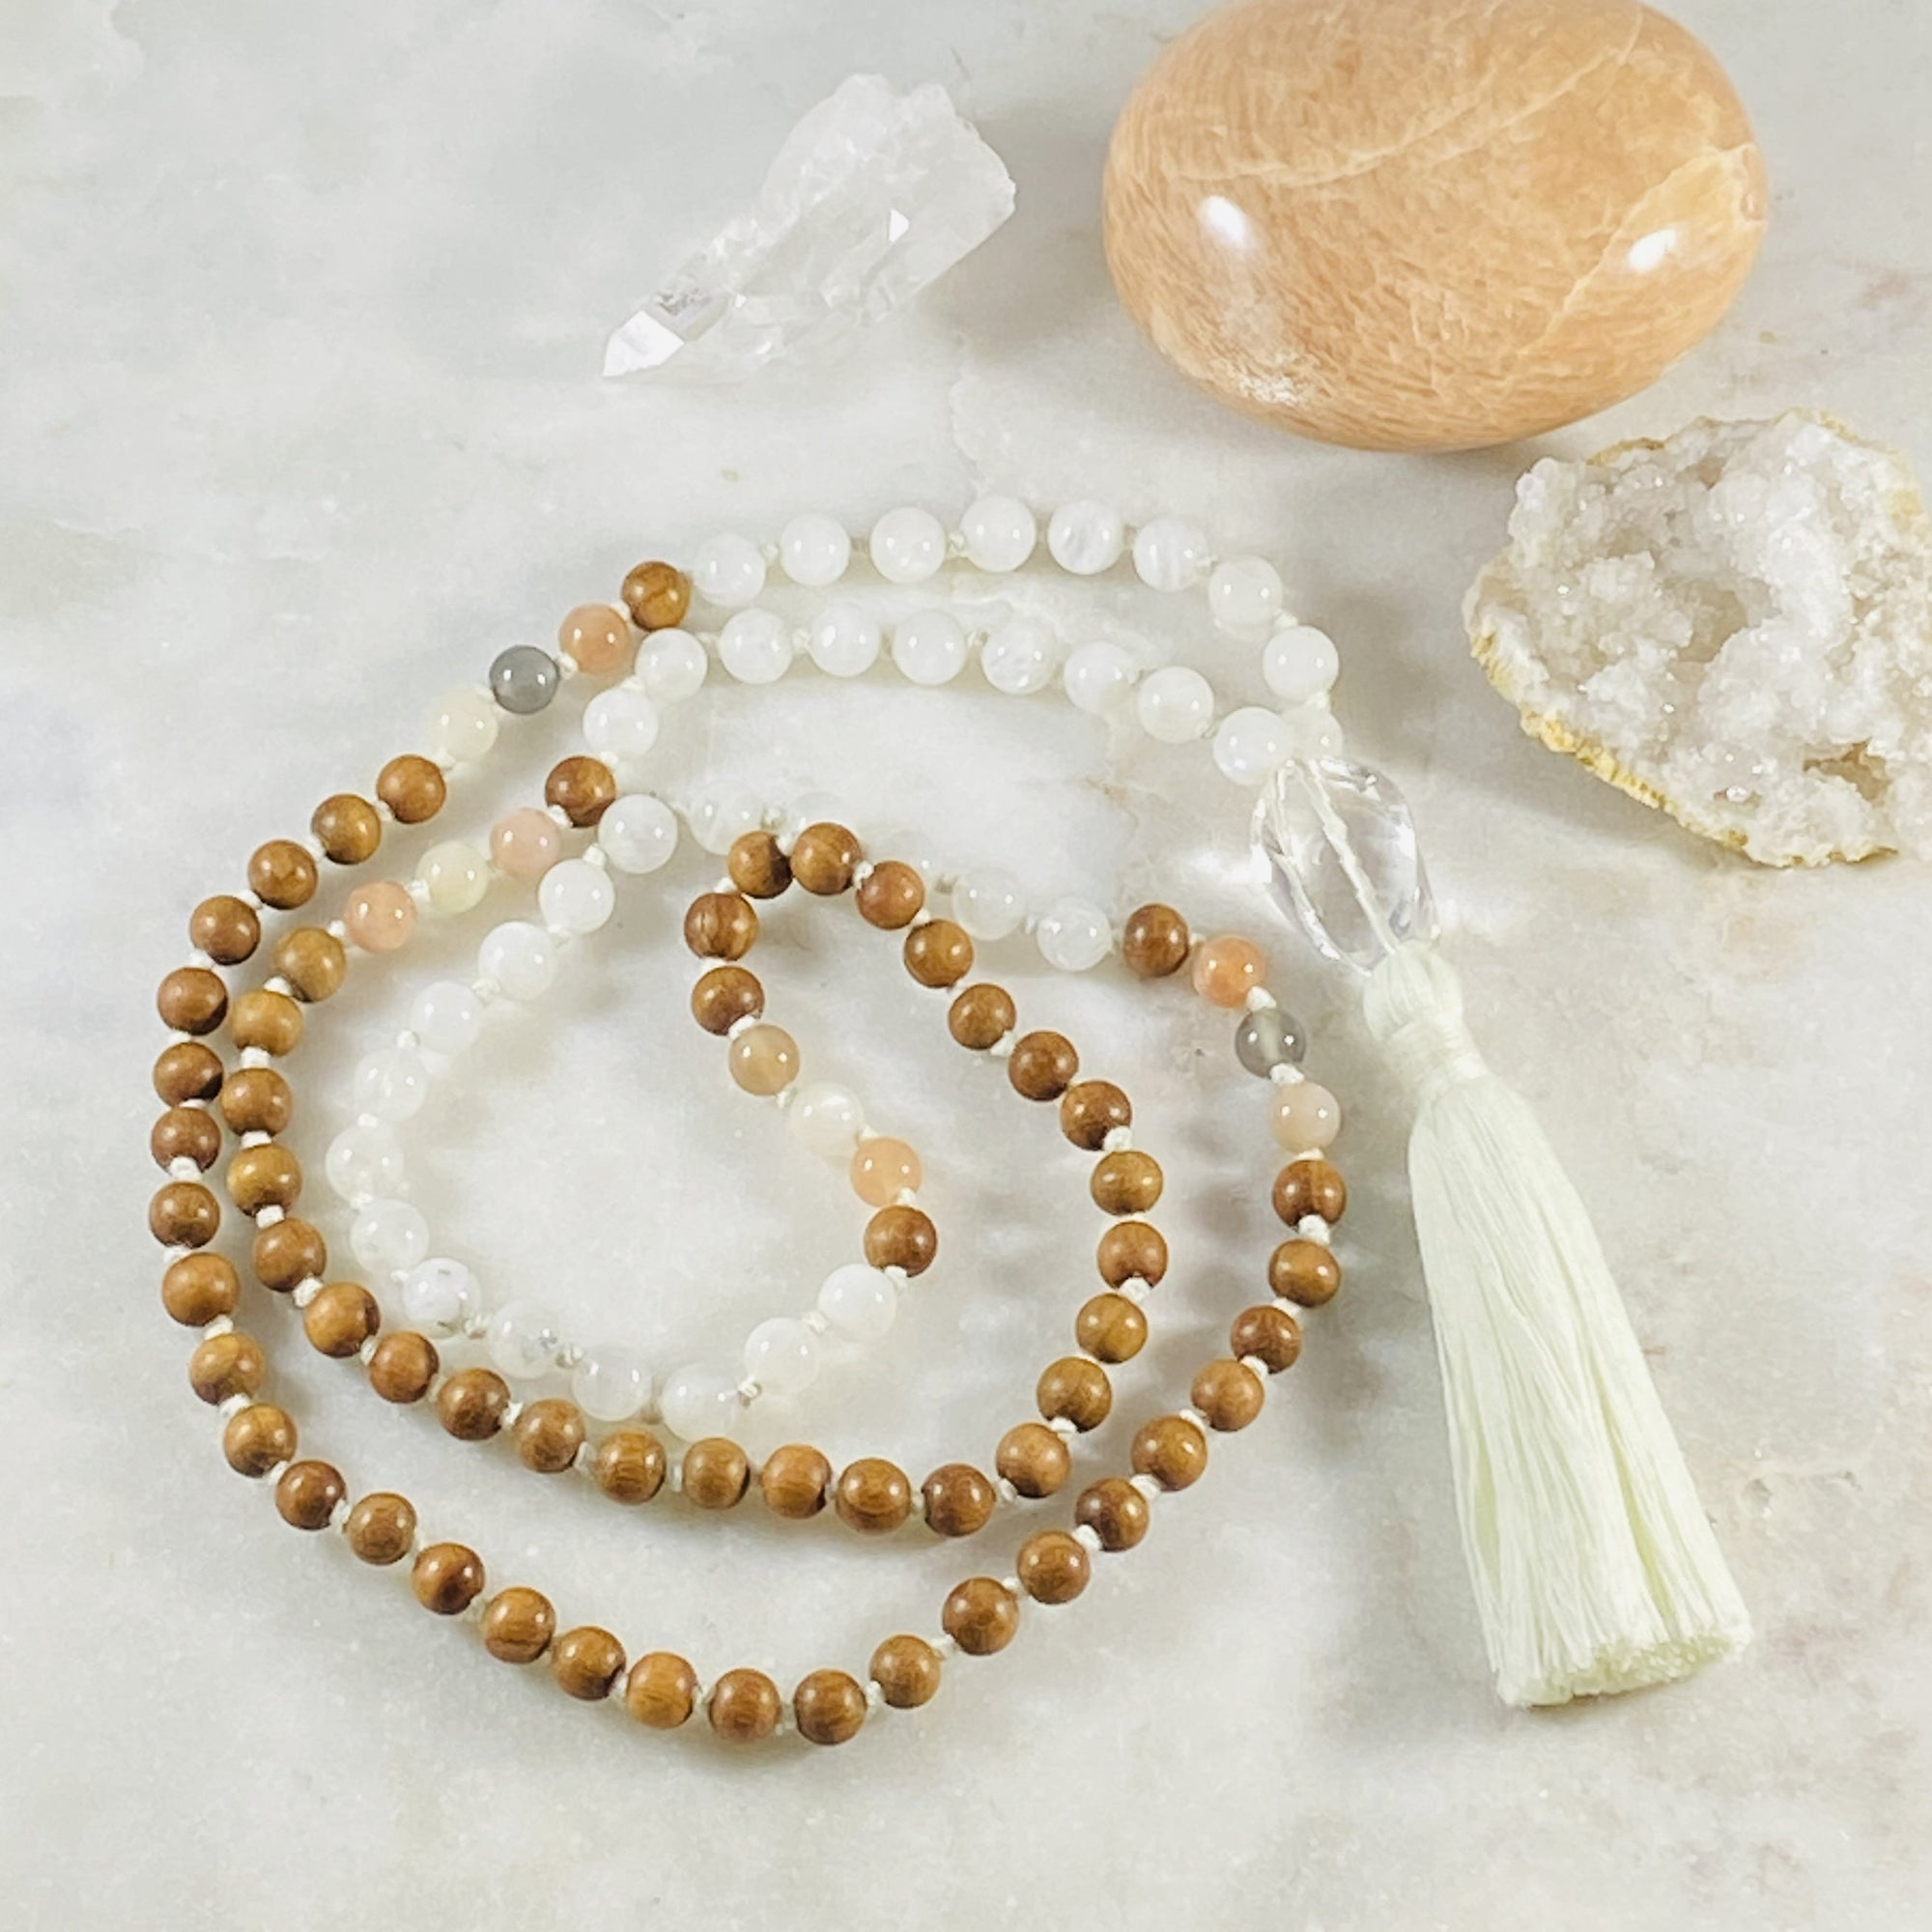 Higher Consciousness Mala for spiritual practice and meditation by Sarah Belle